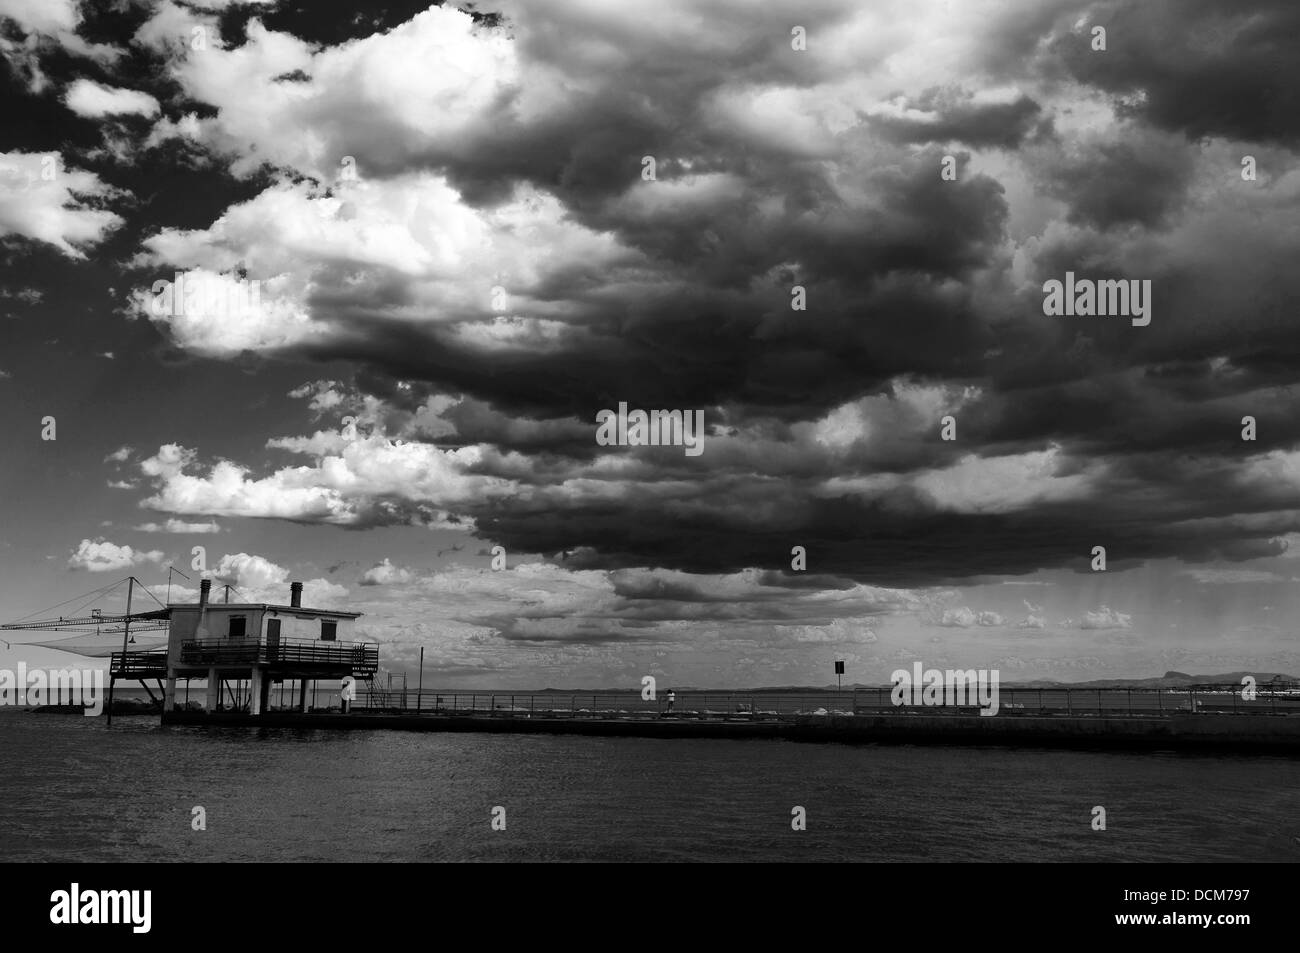 Temporale Stock Photos & Temporale Stock Images - Alamy